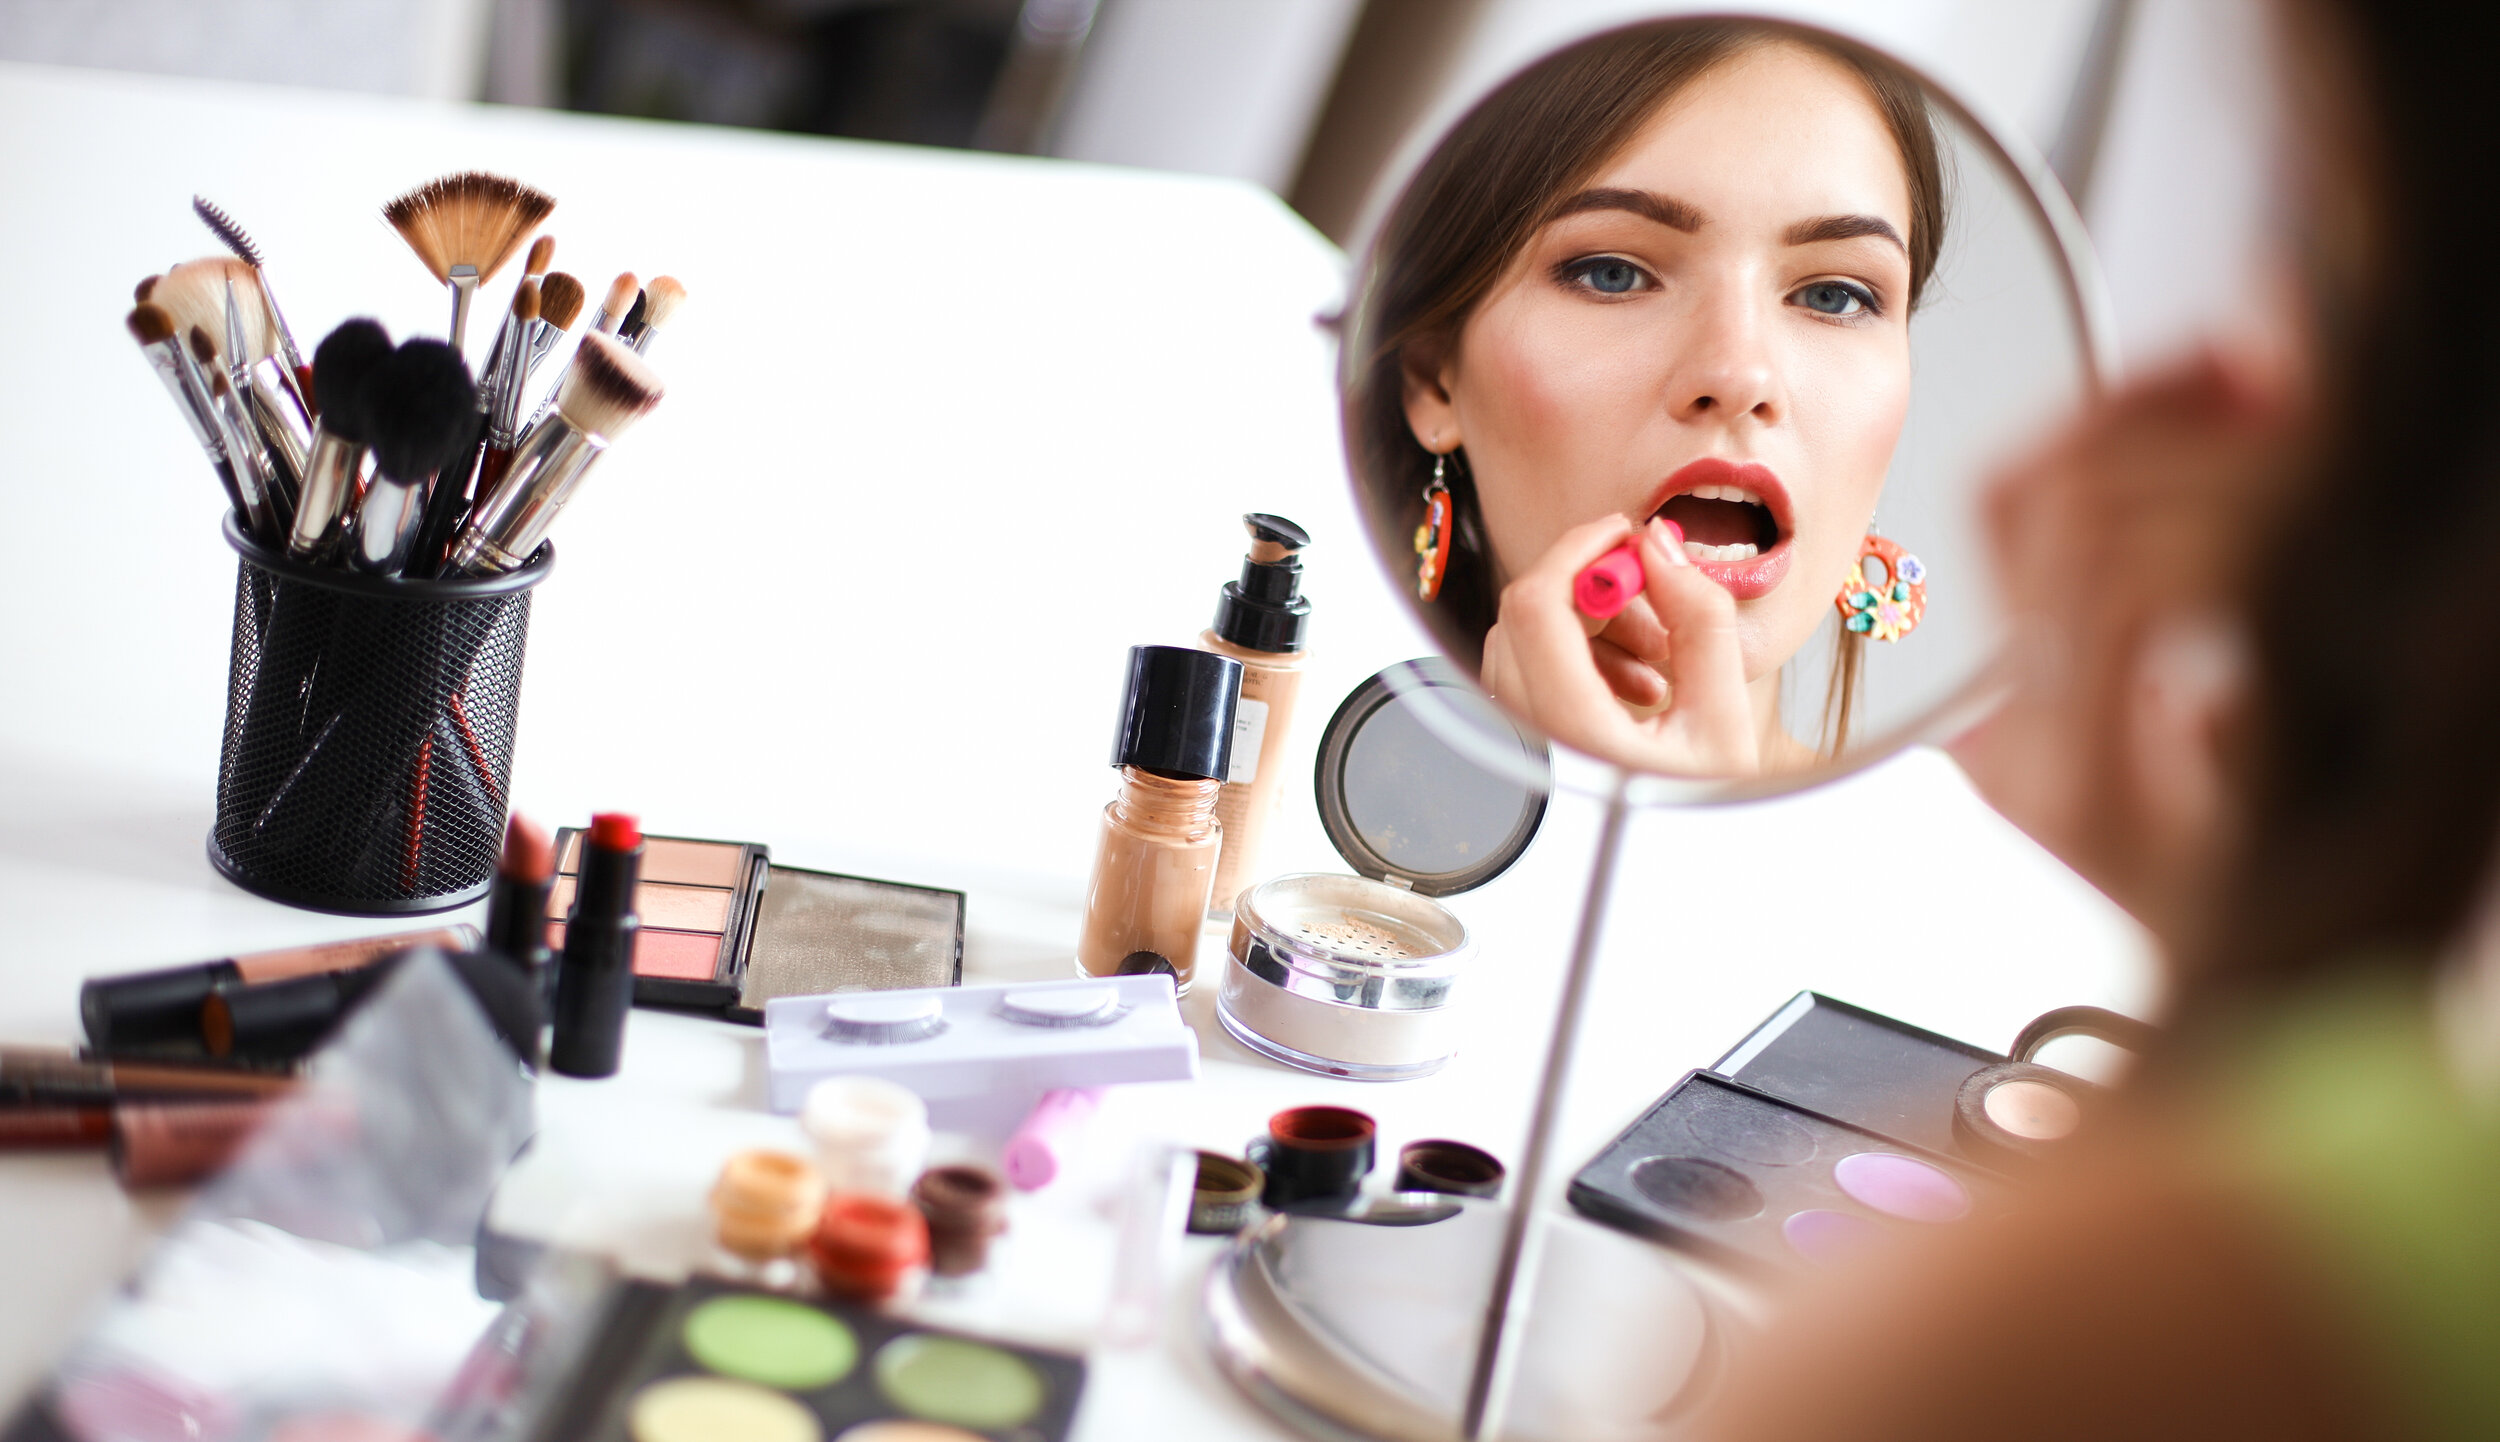 Education The Makeup Movement